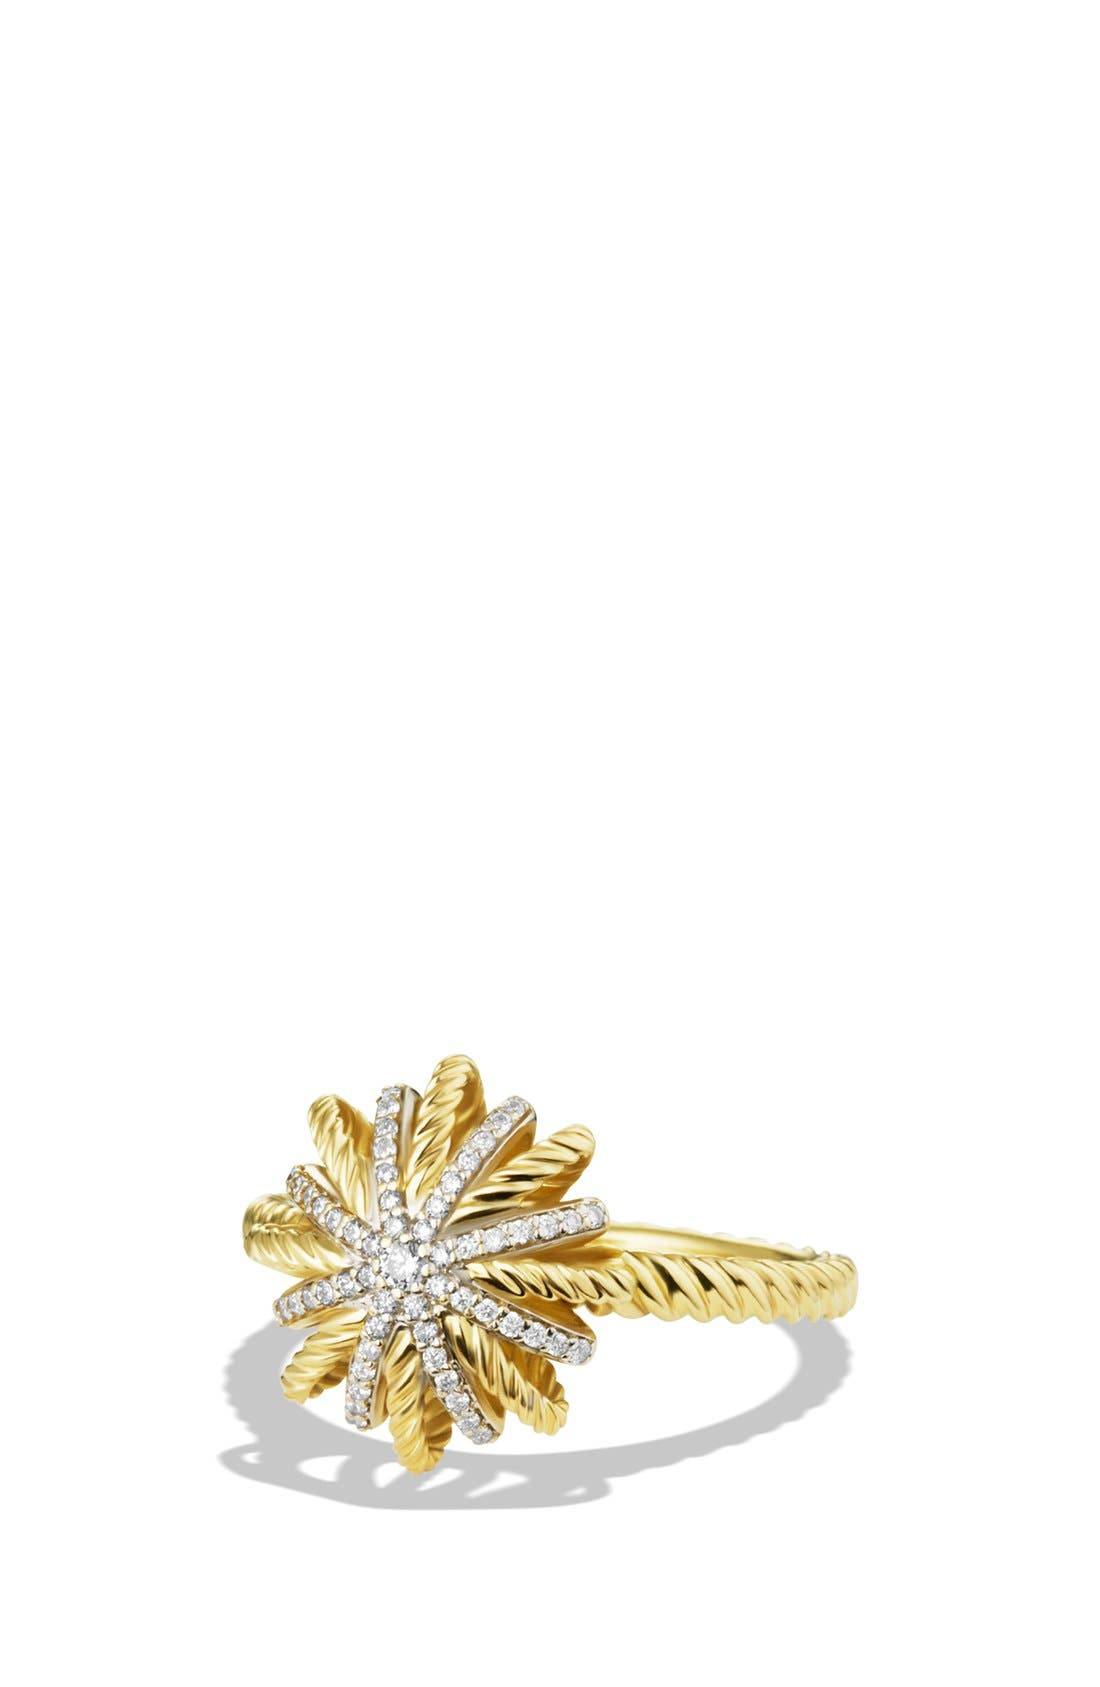 Main Image - David Yurman 'Starburst' Ring with Diamonds in Gold